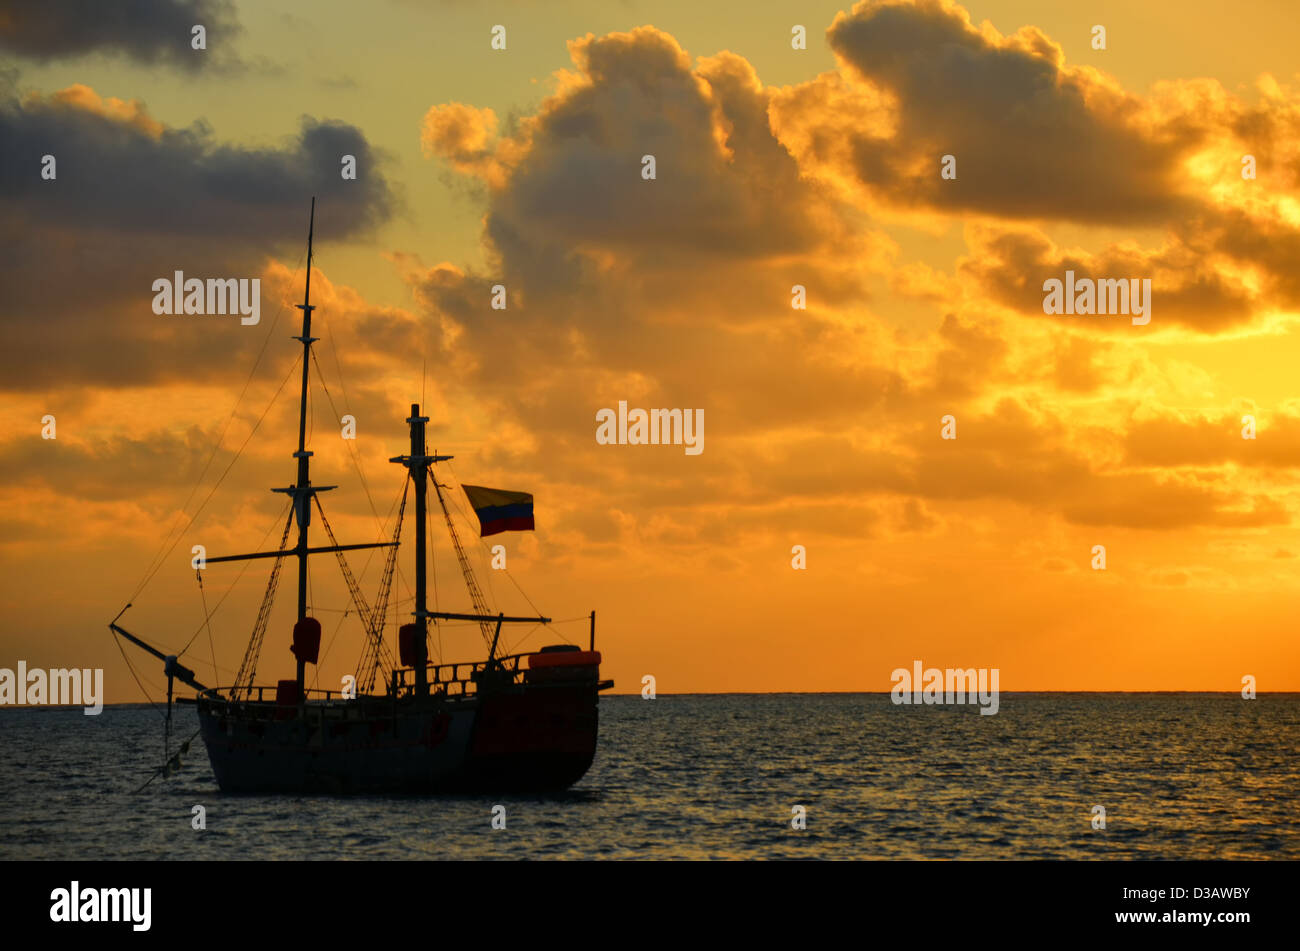 Caribbean sunrise with a pirate ship in San Andres, Colombia - Stock Image